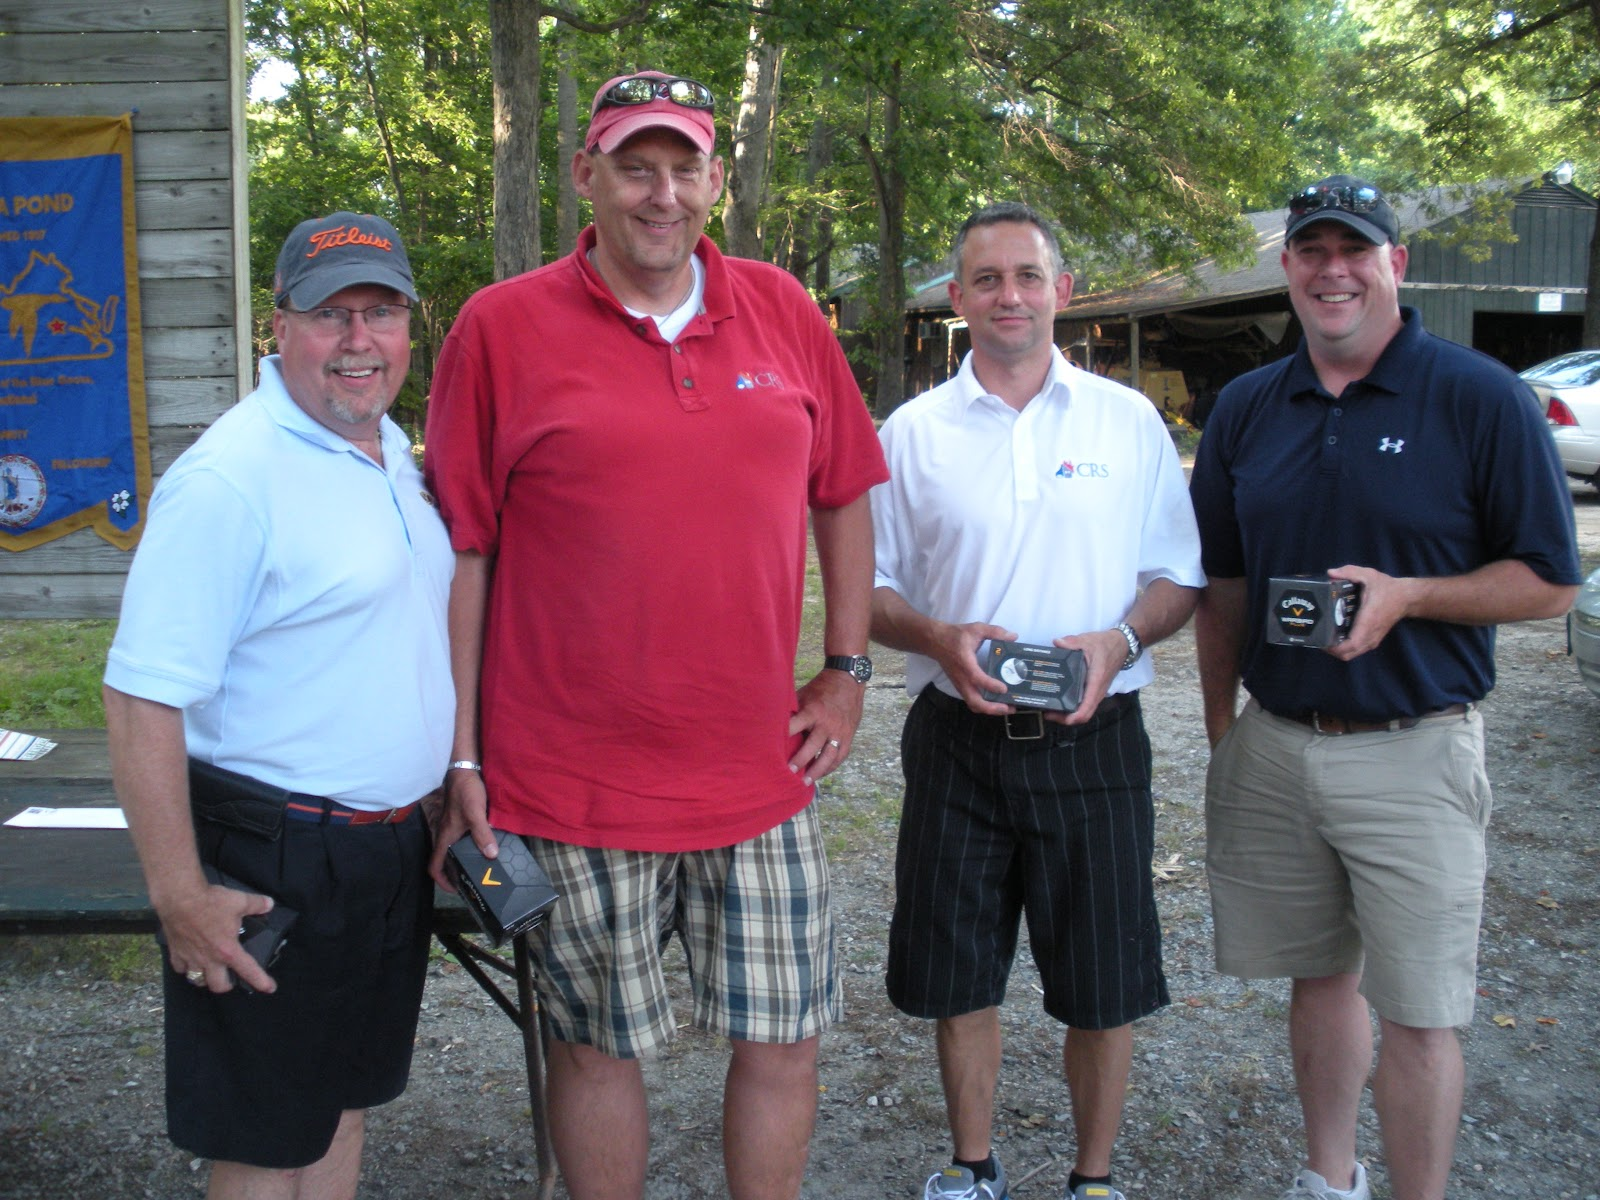 Virginia Pond's 11th Annual Spring Charity Golf